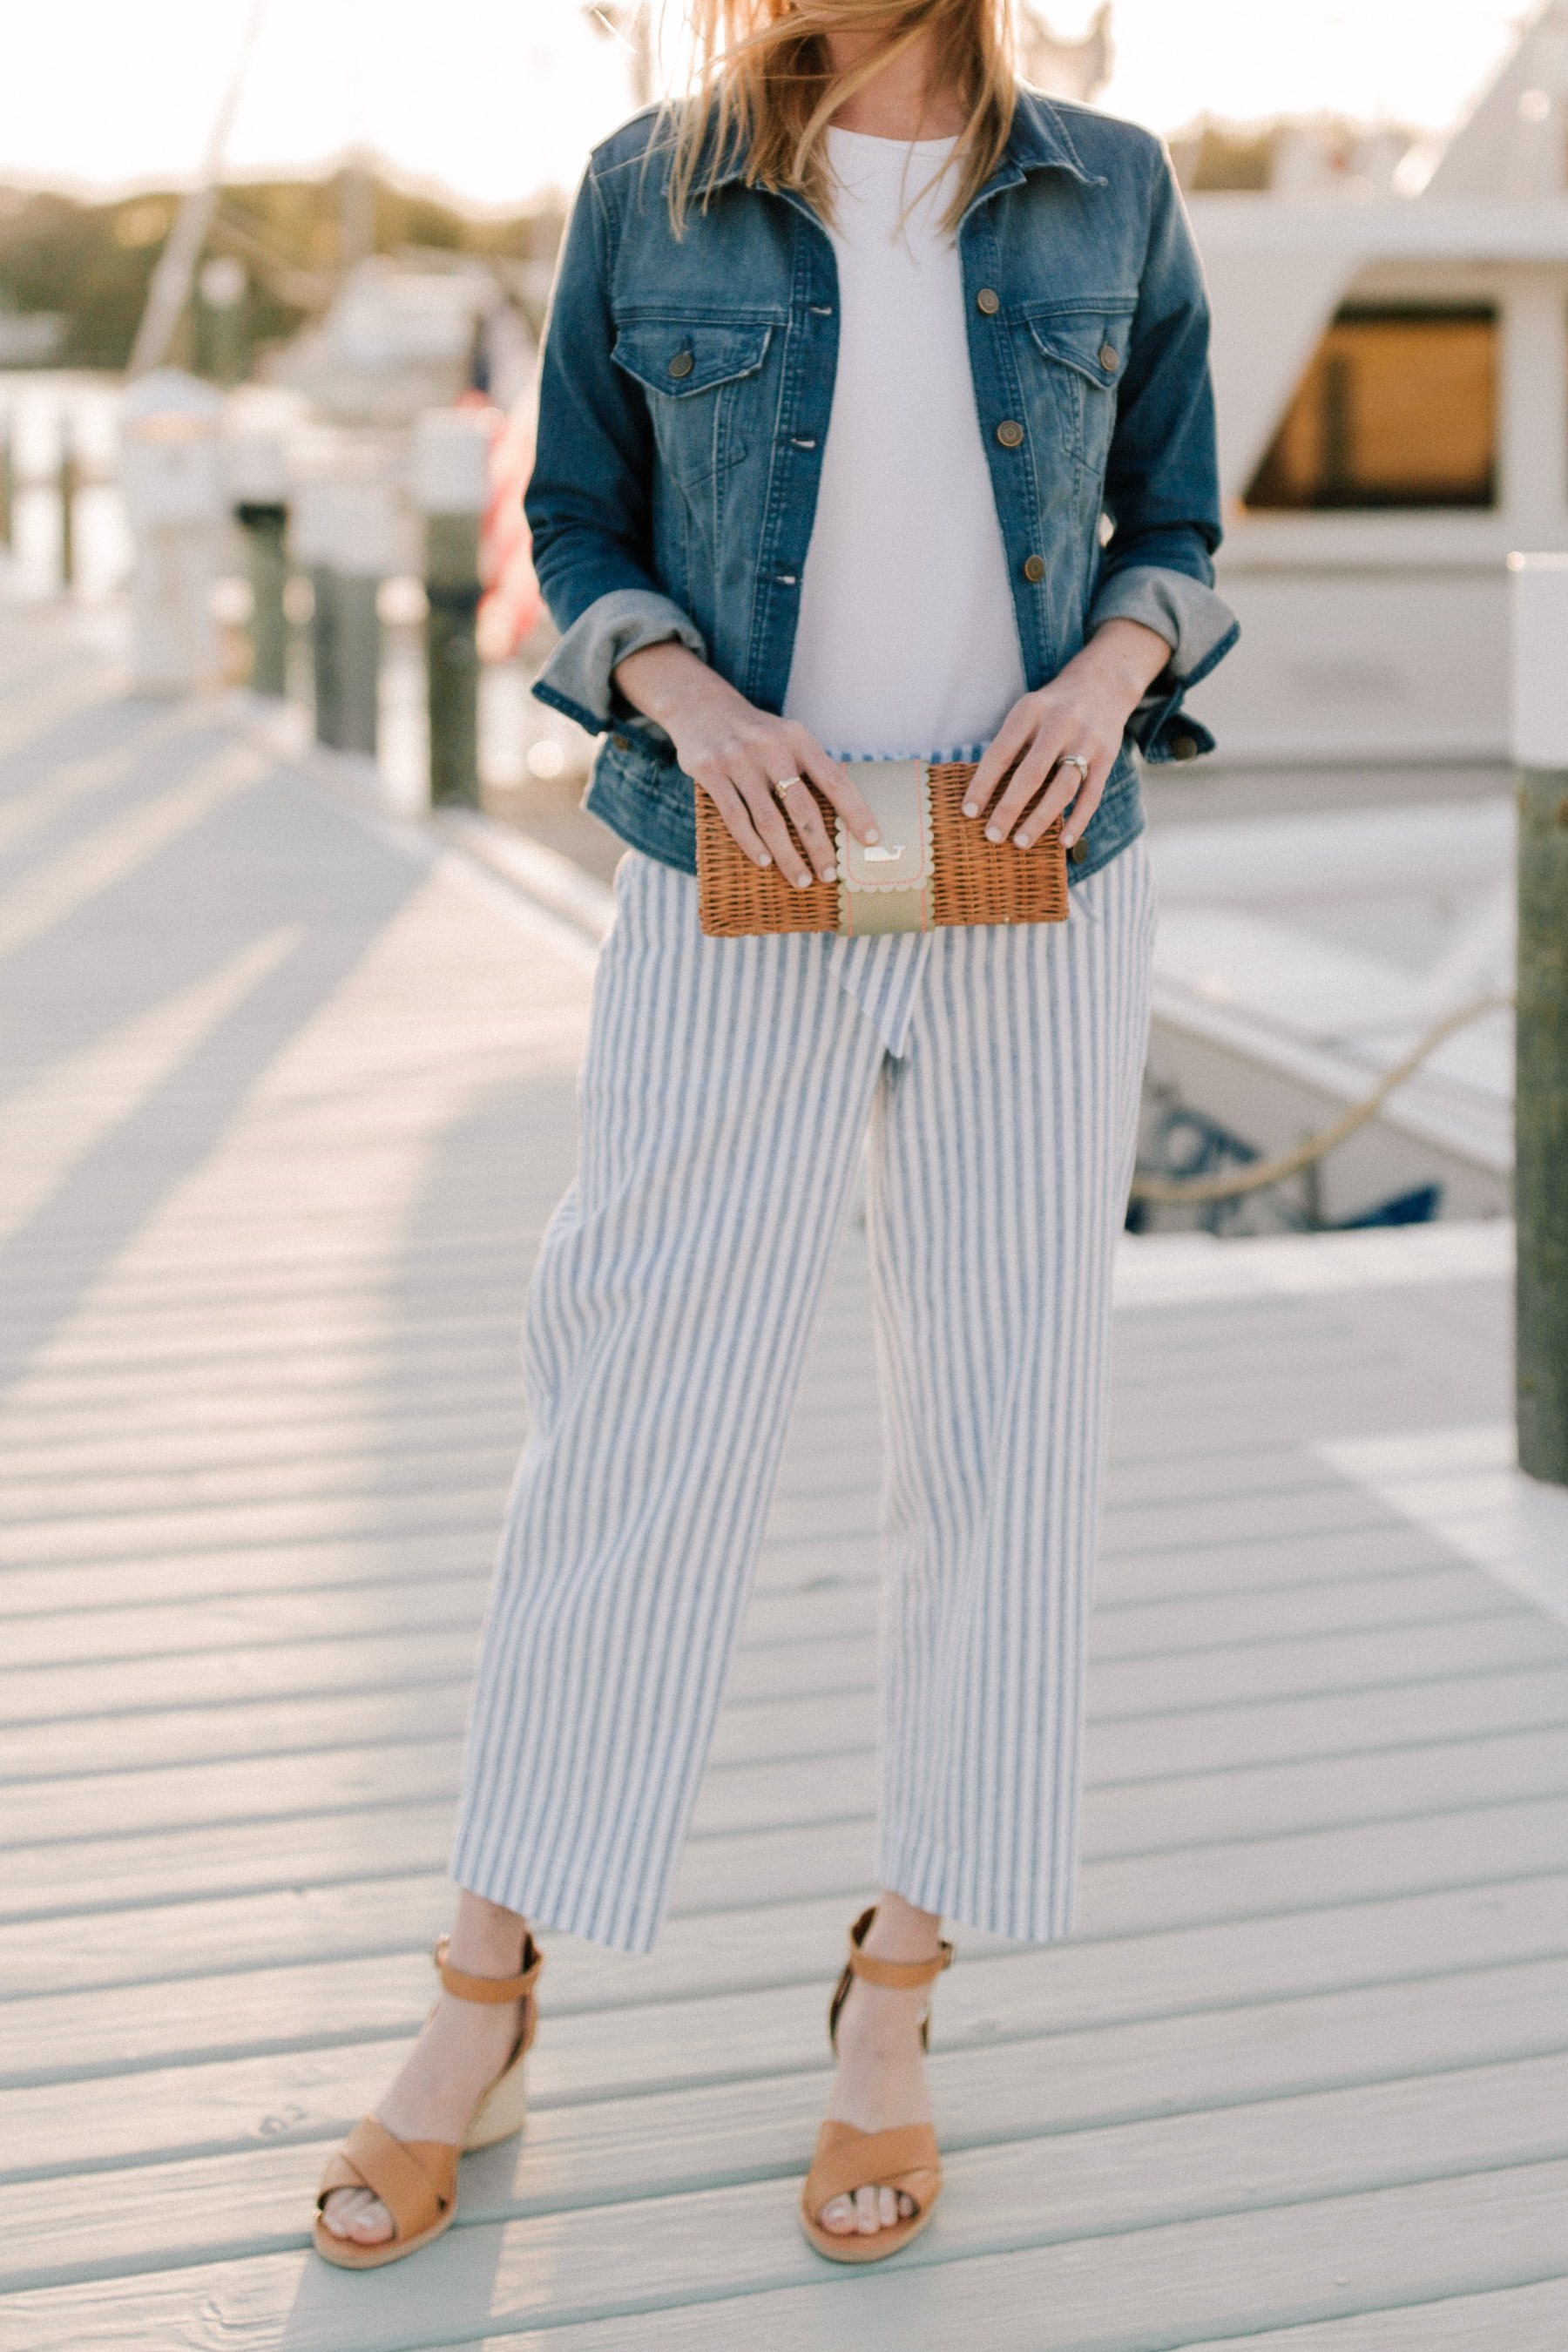 A spring look: Denim Jacket /  Striped Pants / white tee